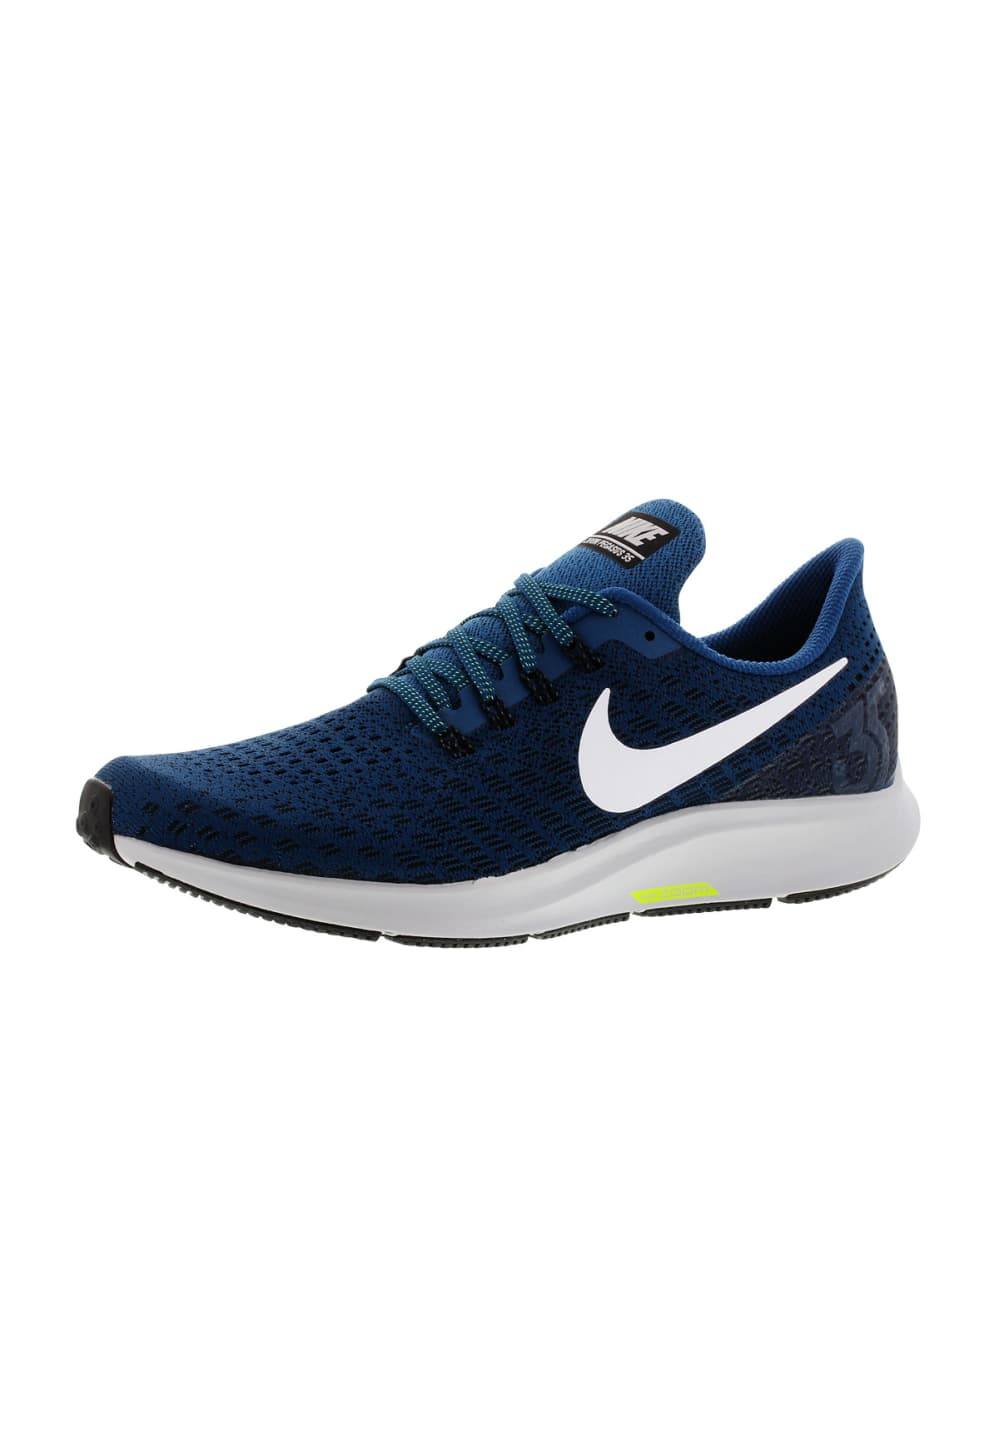 0c8dc0c5effc Nike Air Zoom Pegasus 35 (GS) - Running shoes - Blue